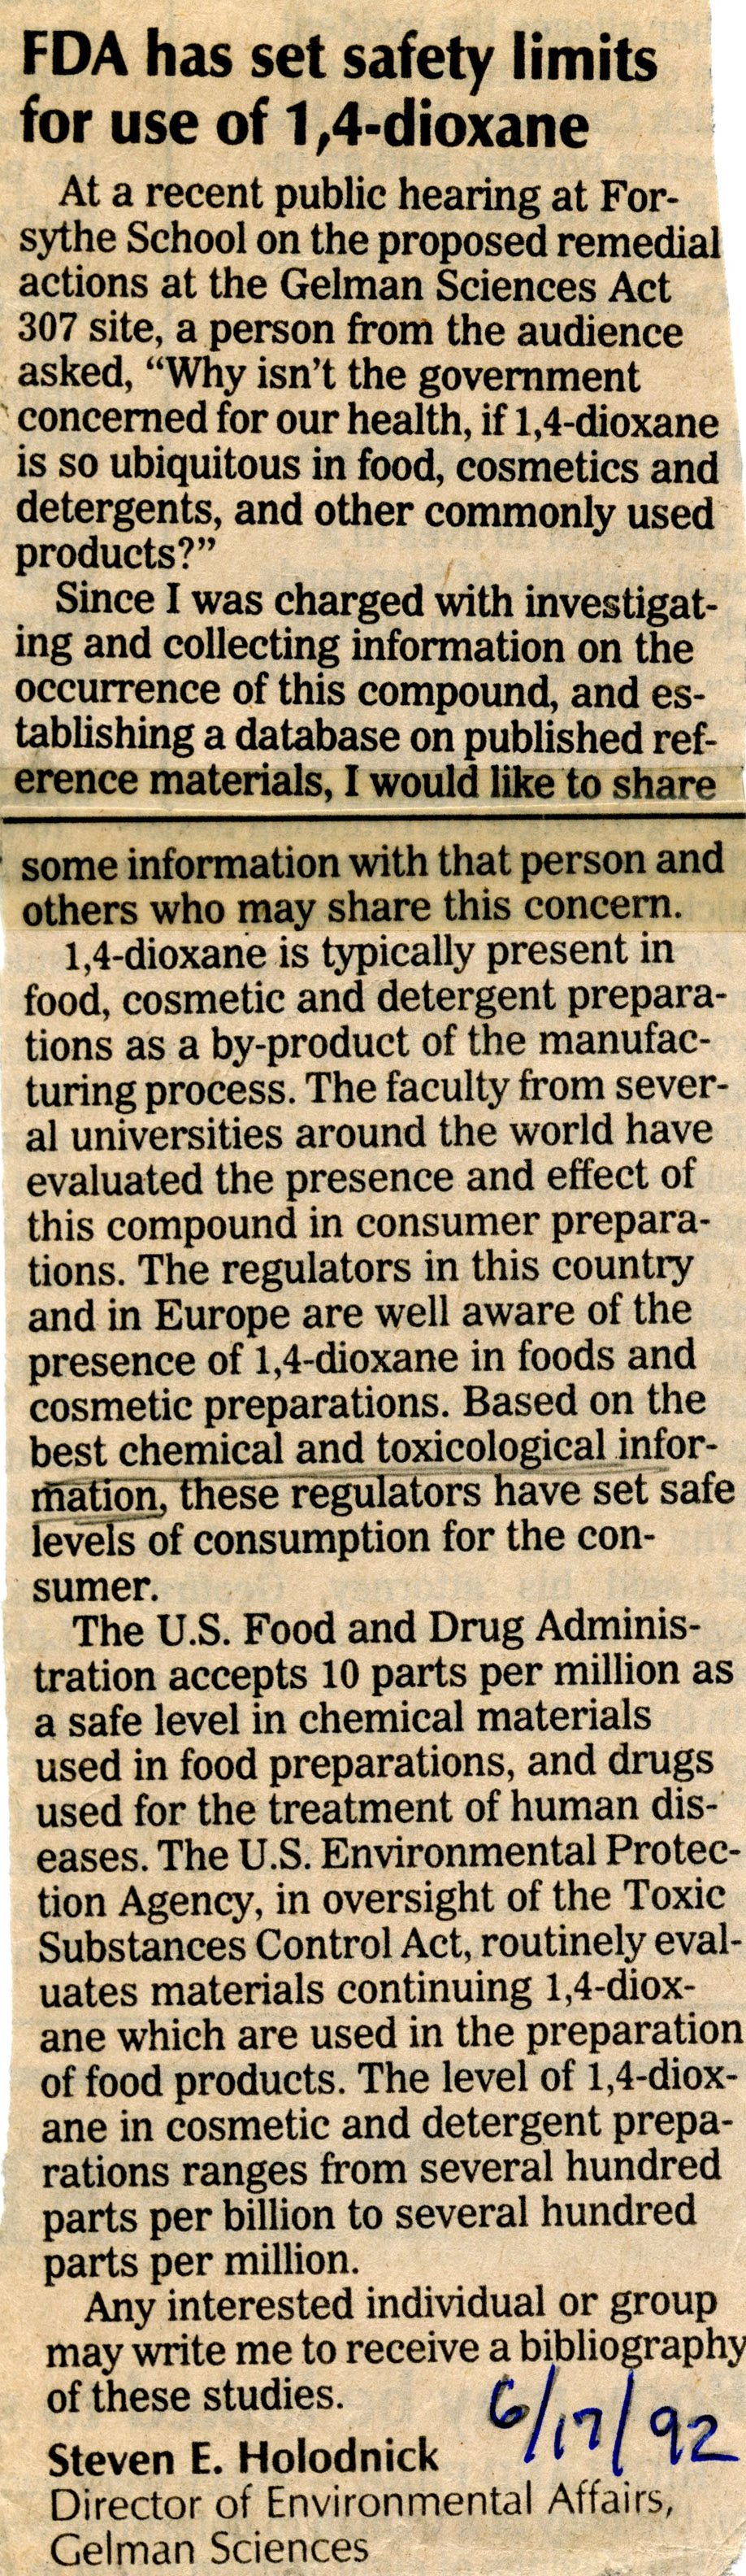 FDA Has Set Safety Limits For Use of 1,4-dioxane image